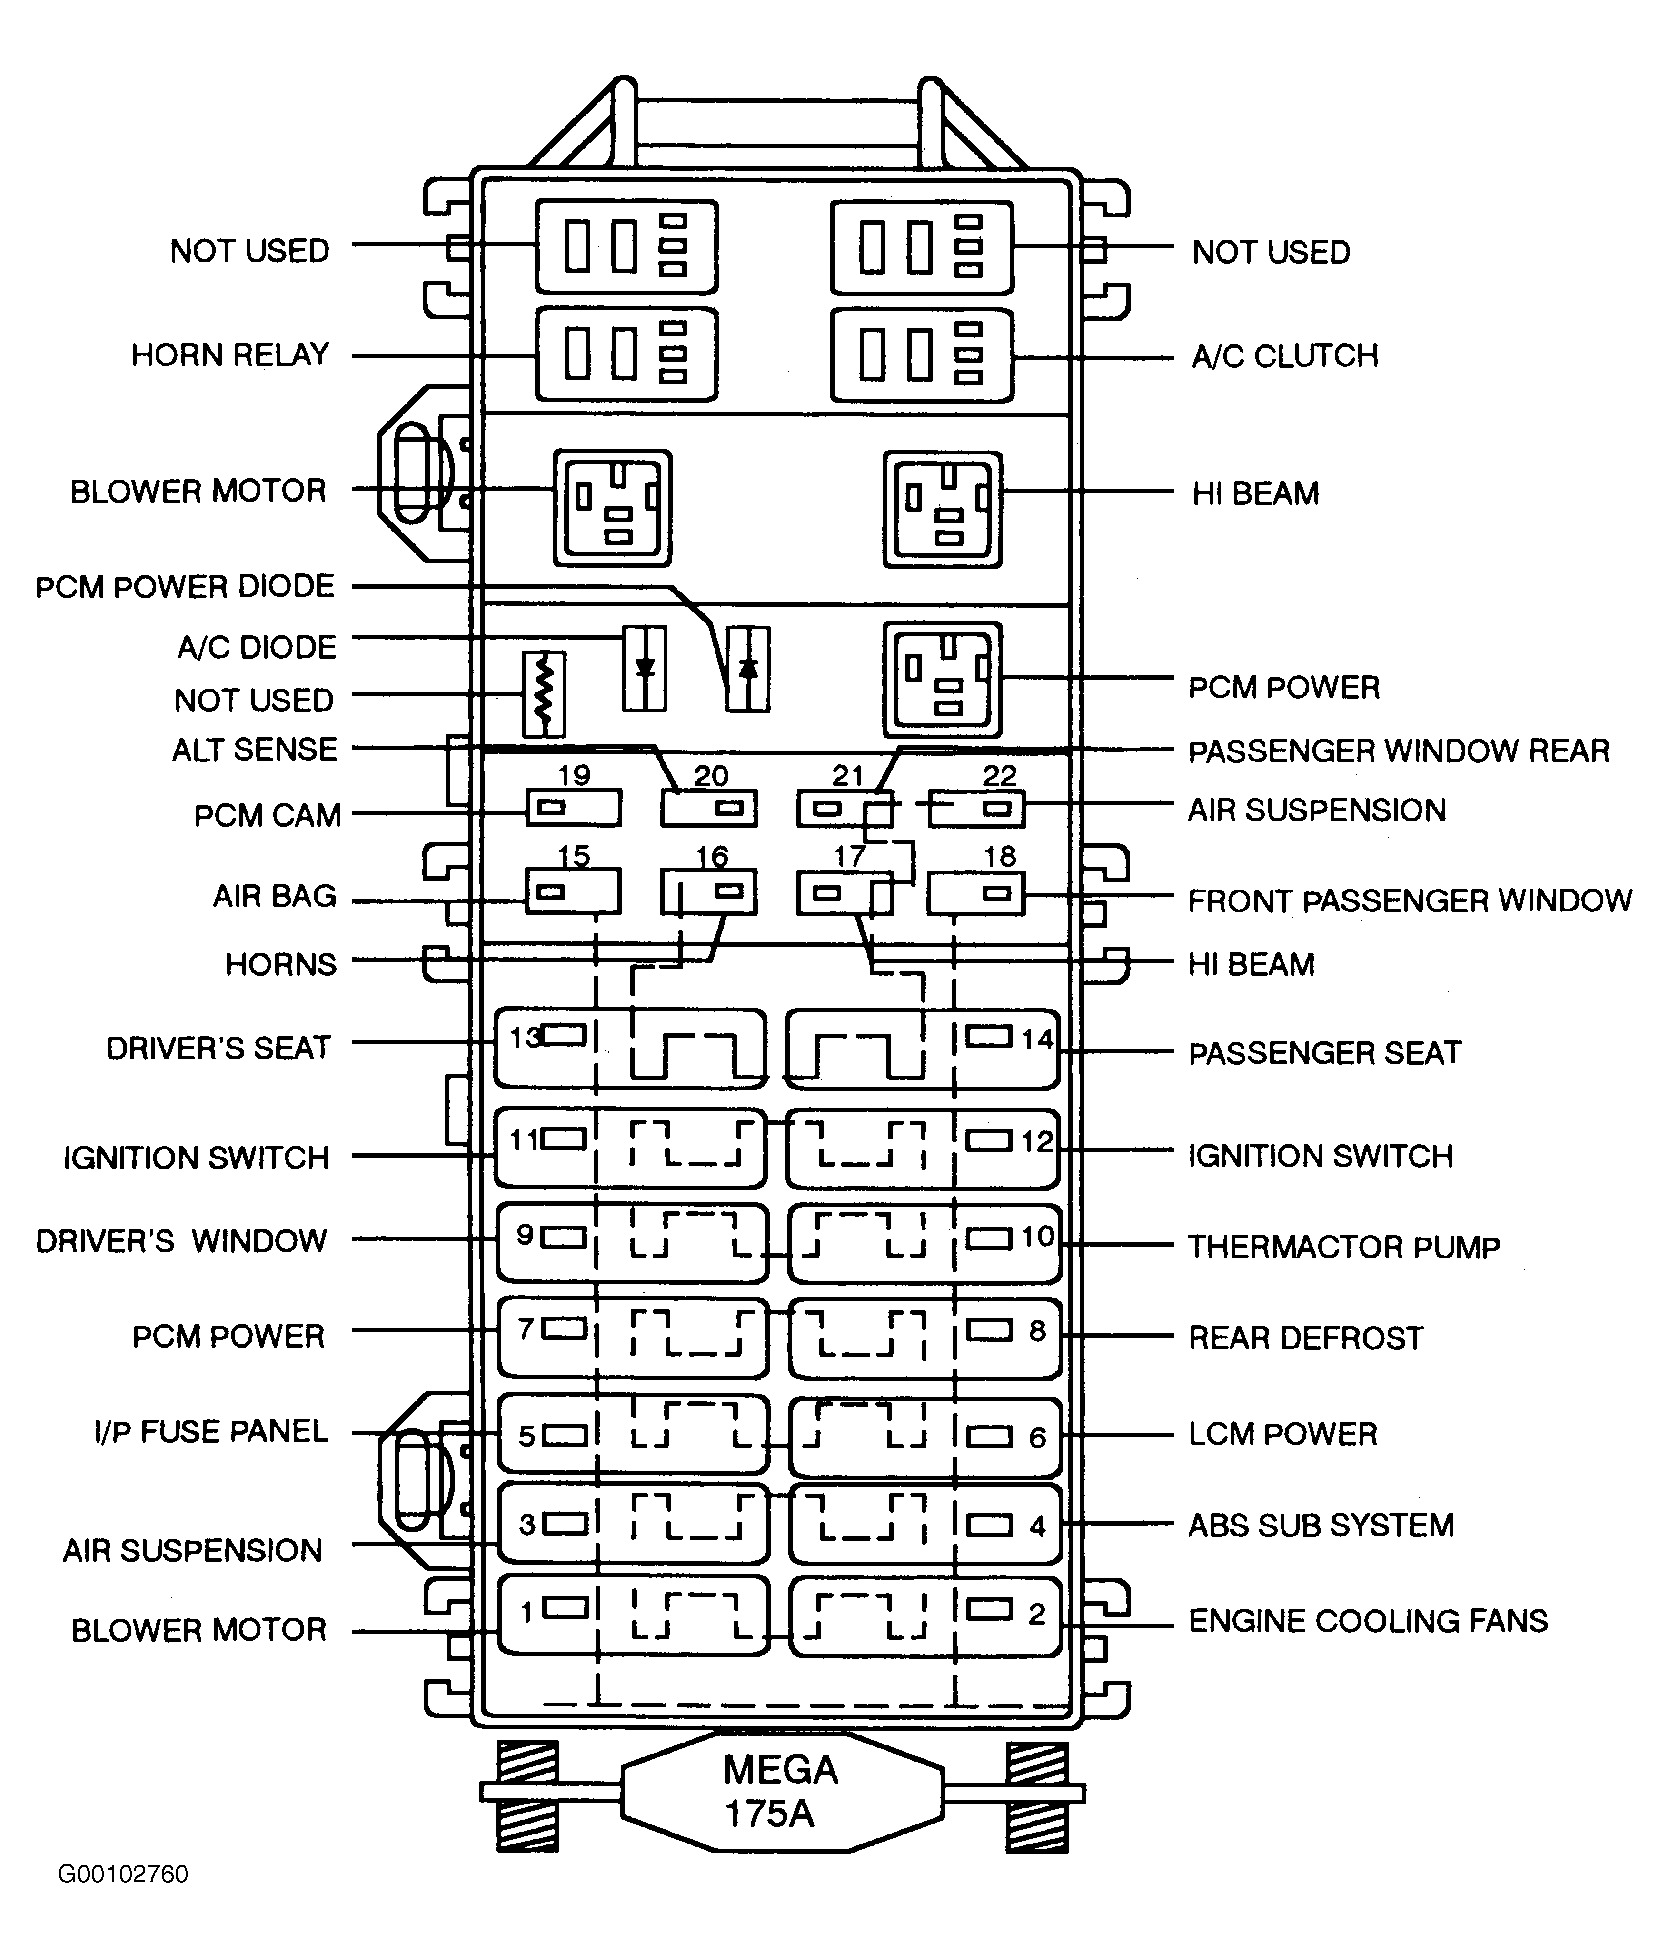 1998 lincoln continental fuse panel diagram